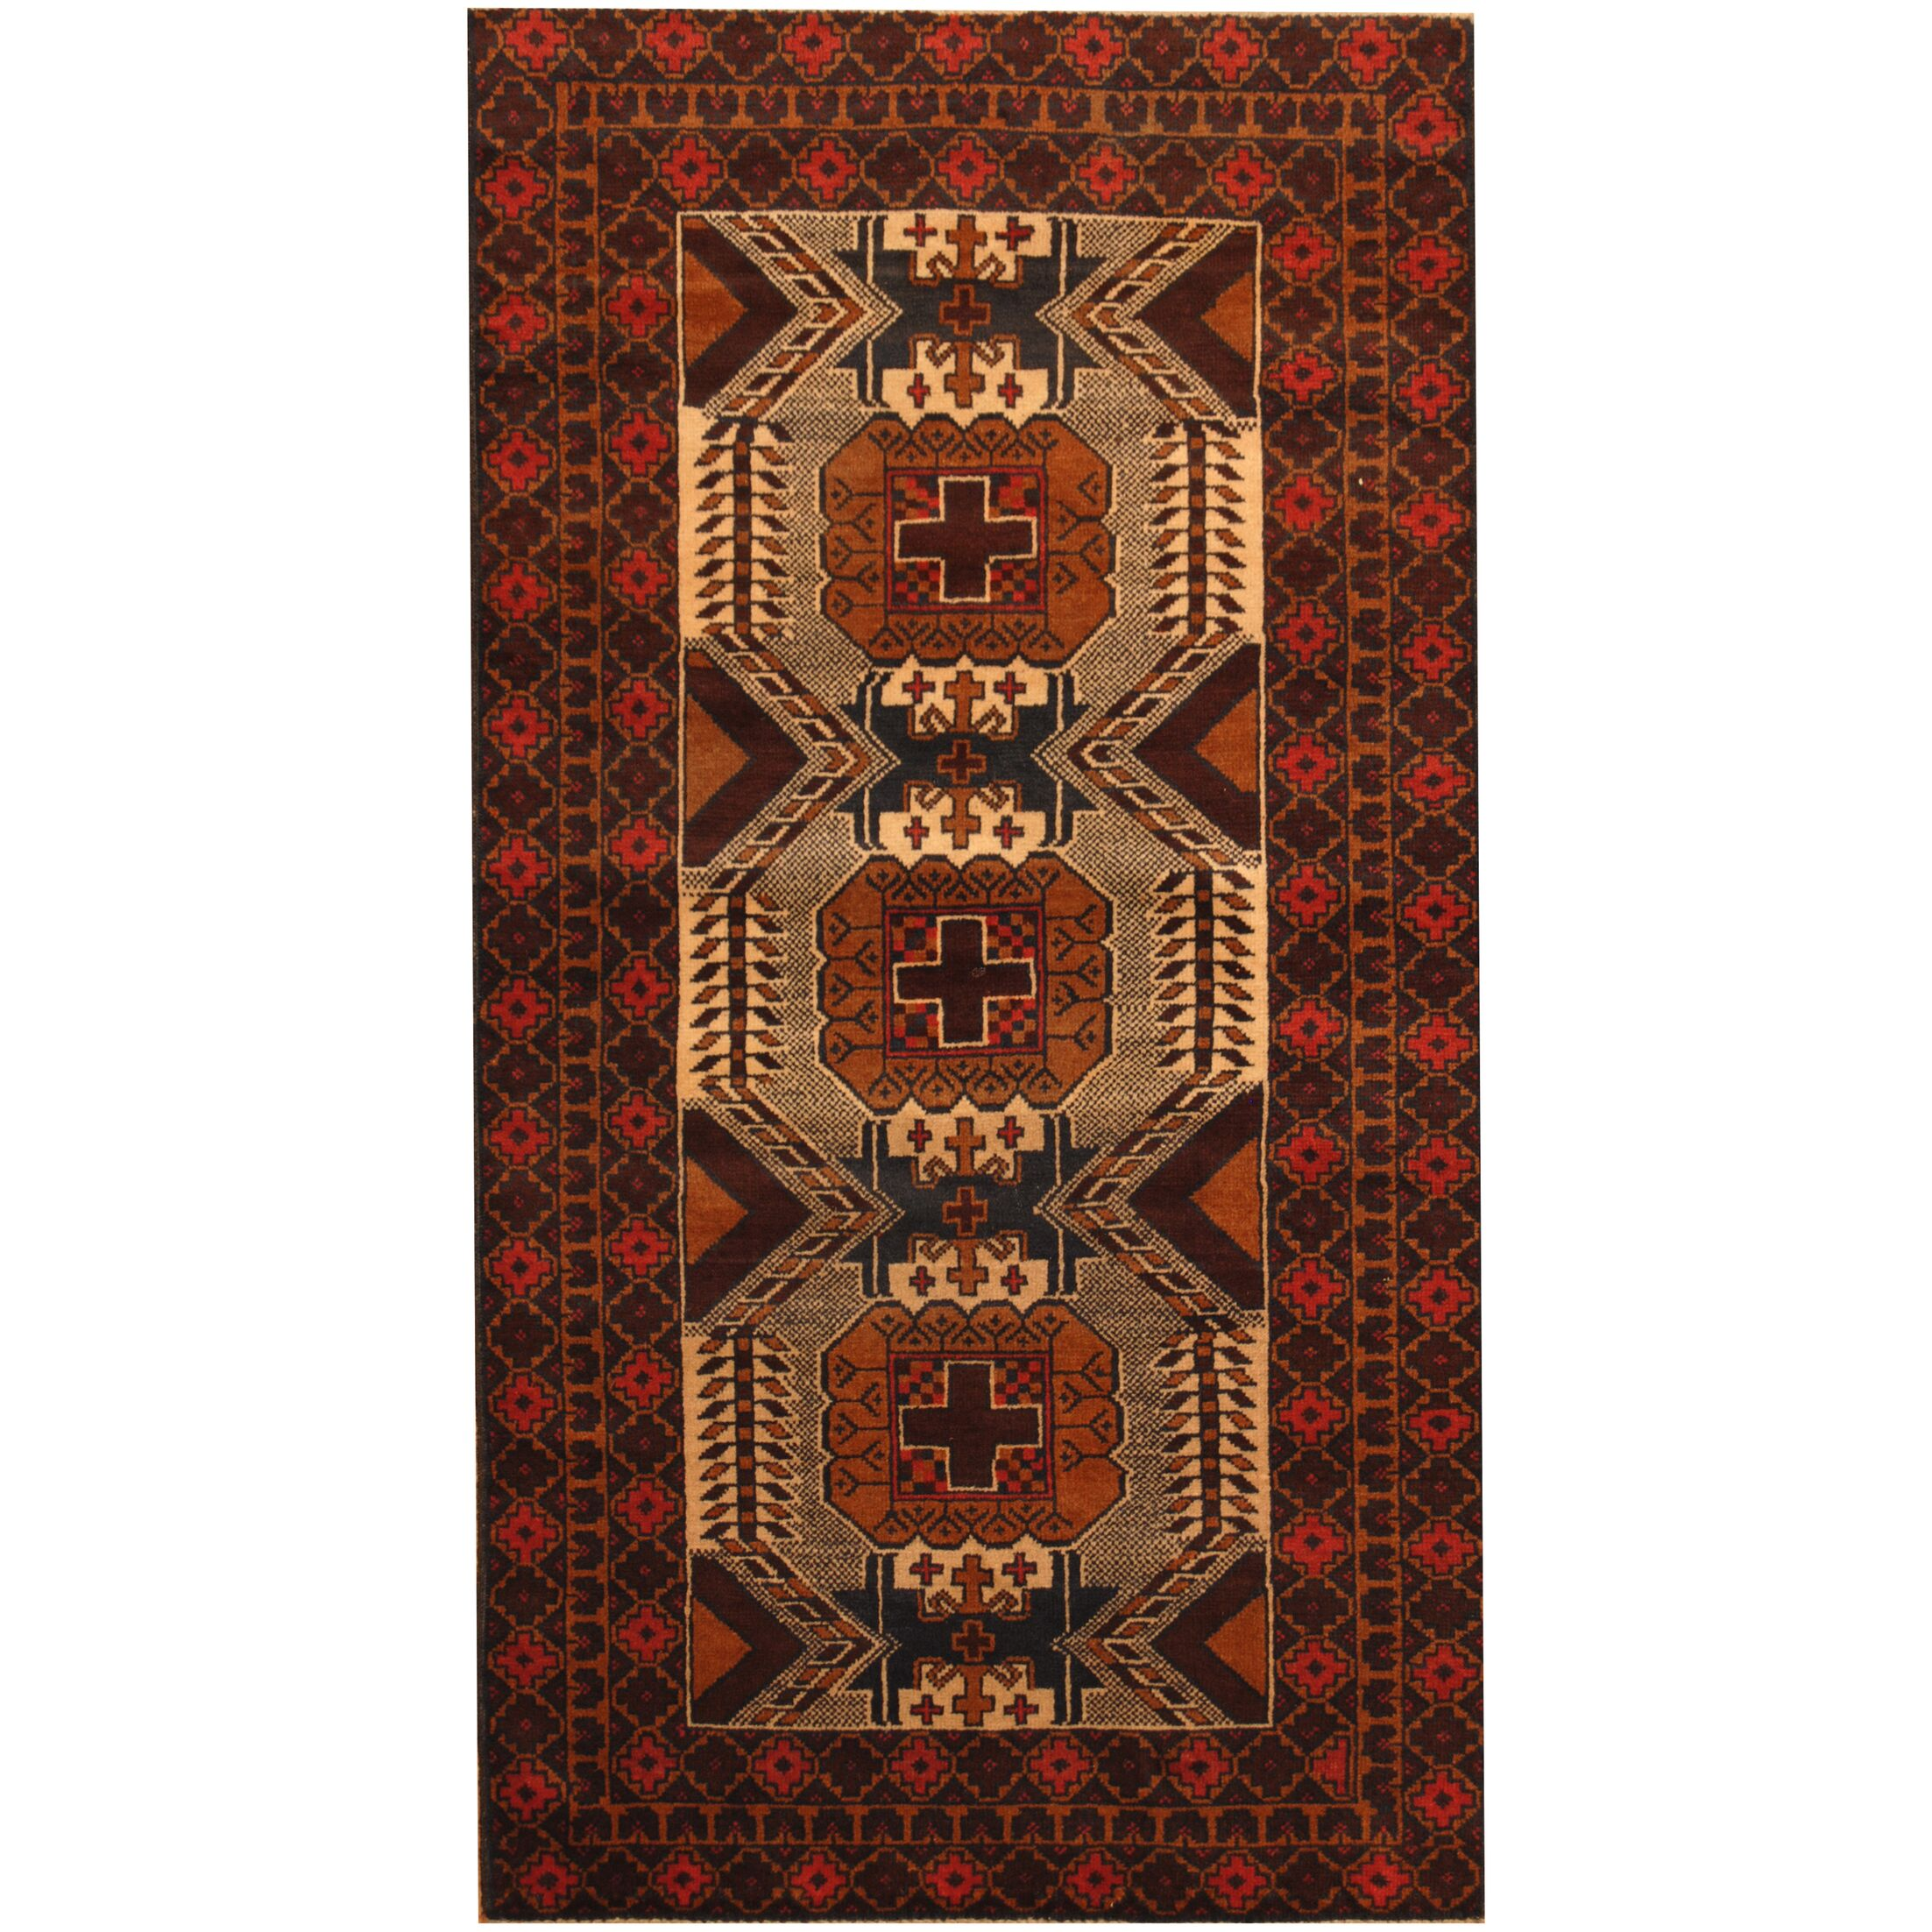 Prentice Tribal Balouchi Hand-Knotted Ivory/Tan Area Rug